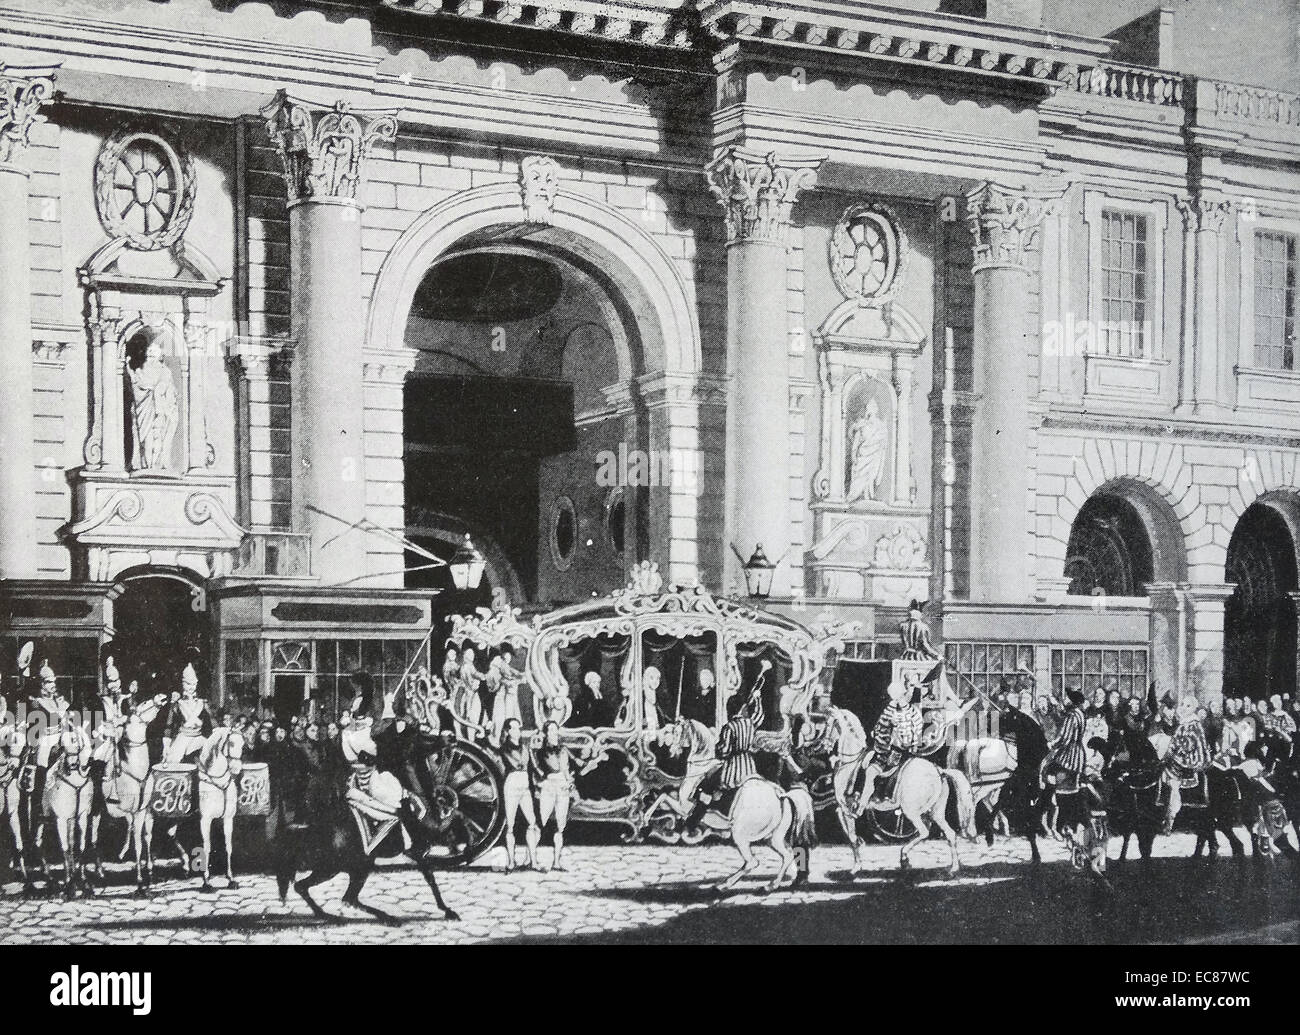 Photograph of the Proclamation of King George IV of Great Britain at the Royal Exchange, London. Dated 1820 - Stock Image